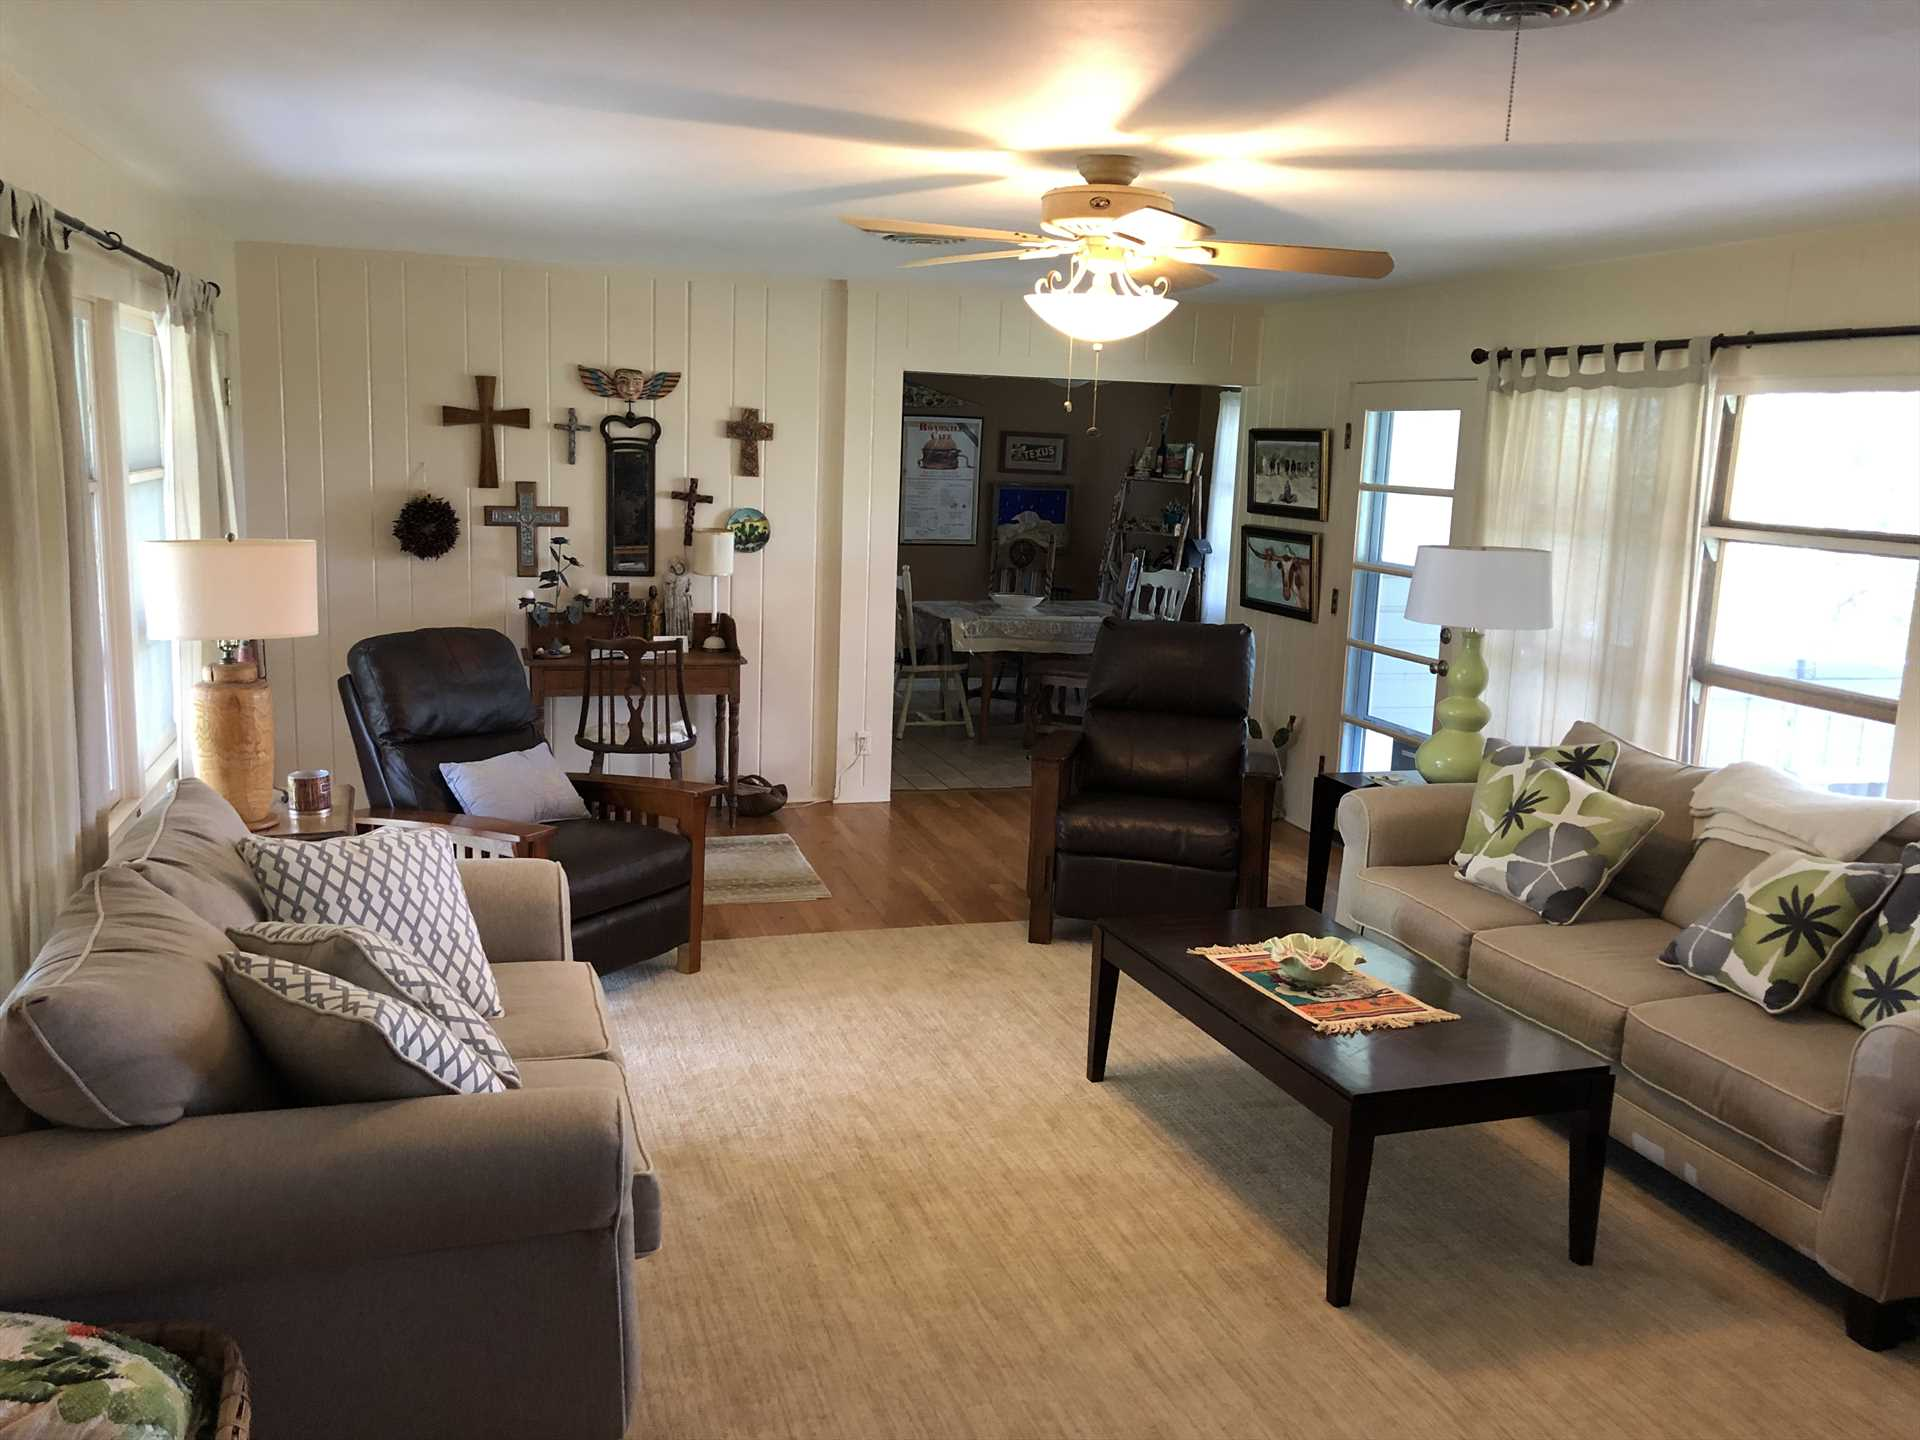 Imagine your family in this well-lit and relaxing living area!